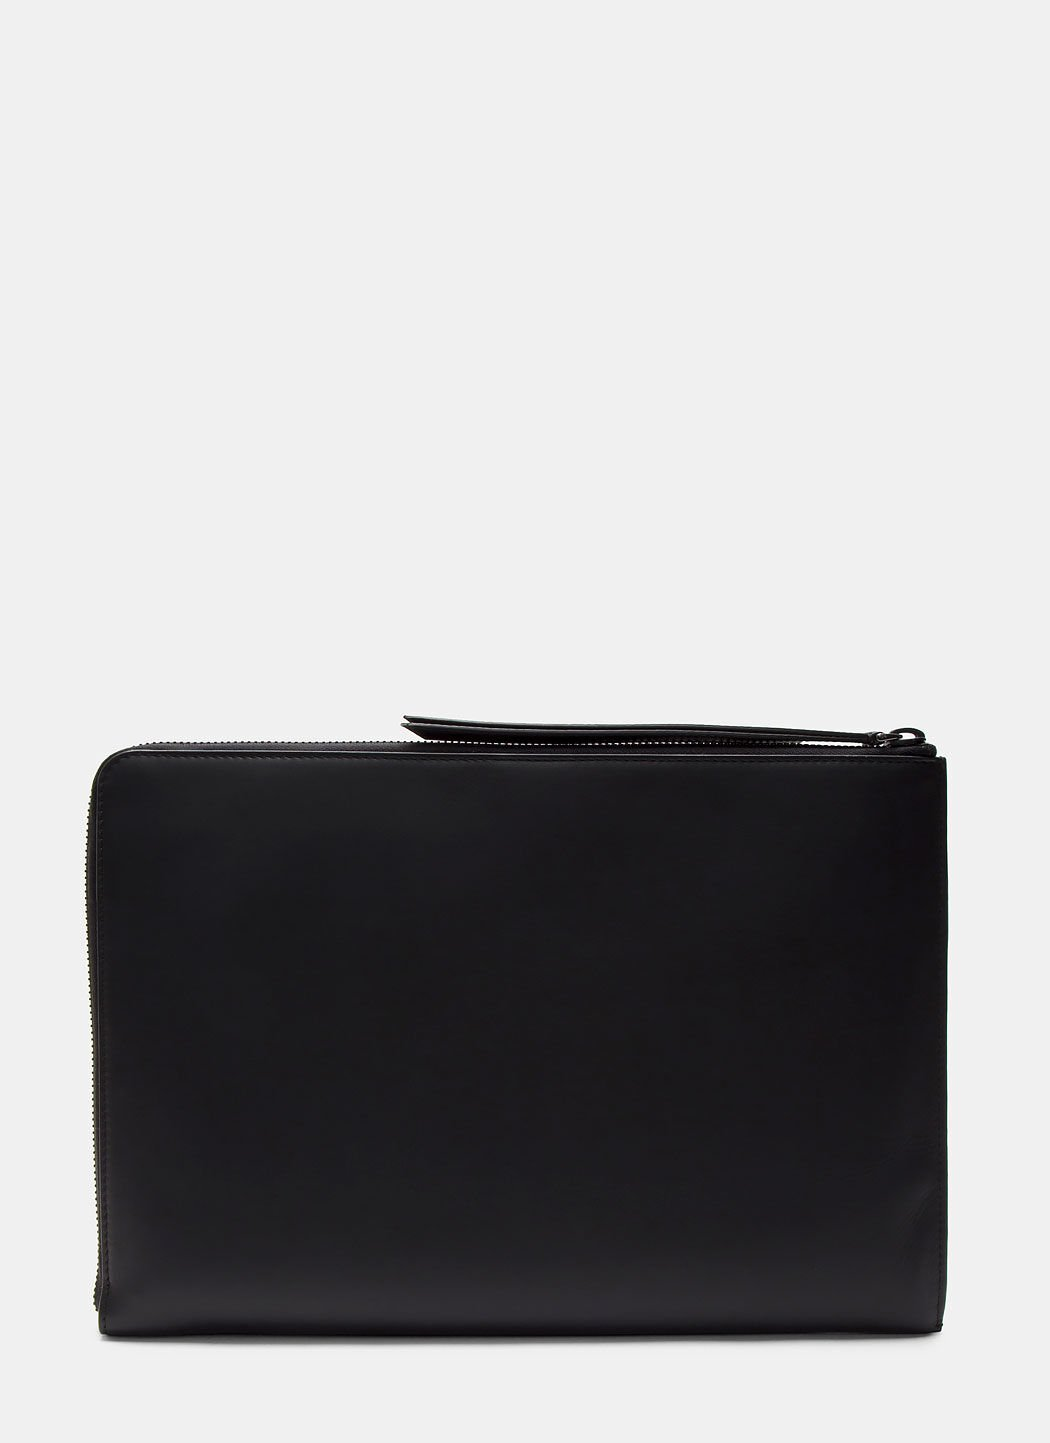 FENDI Men'S Grace Zipped Leather Document Case In Black